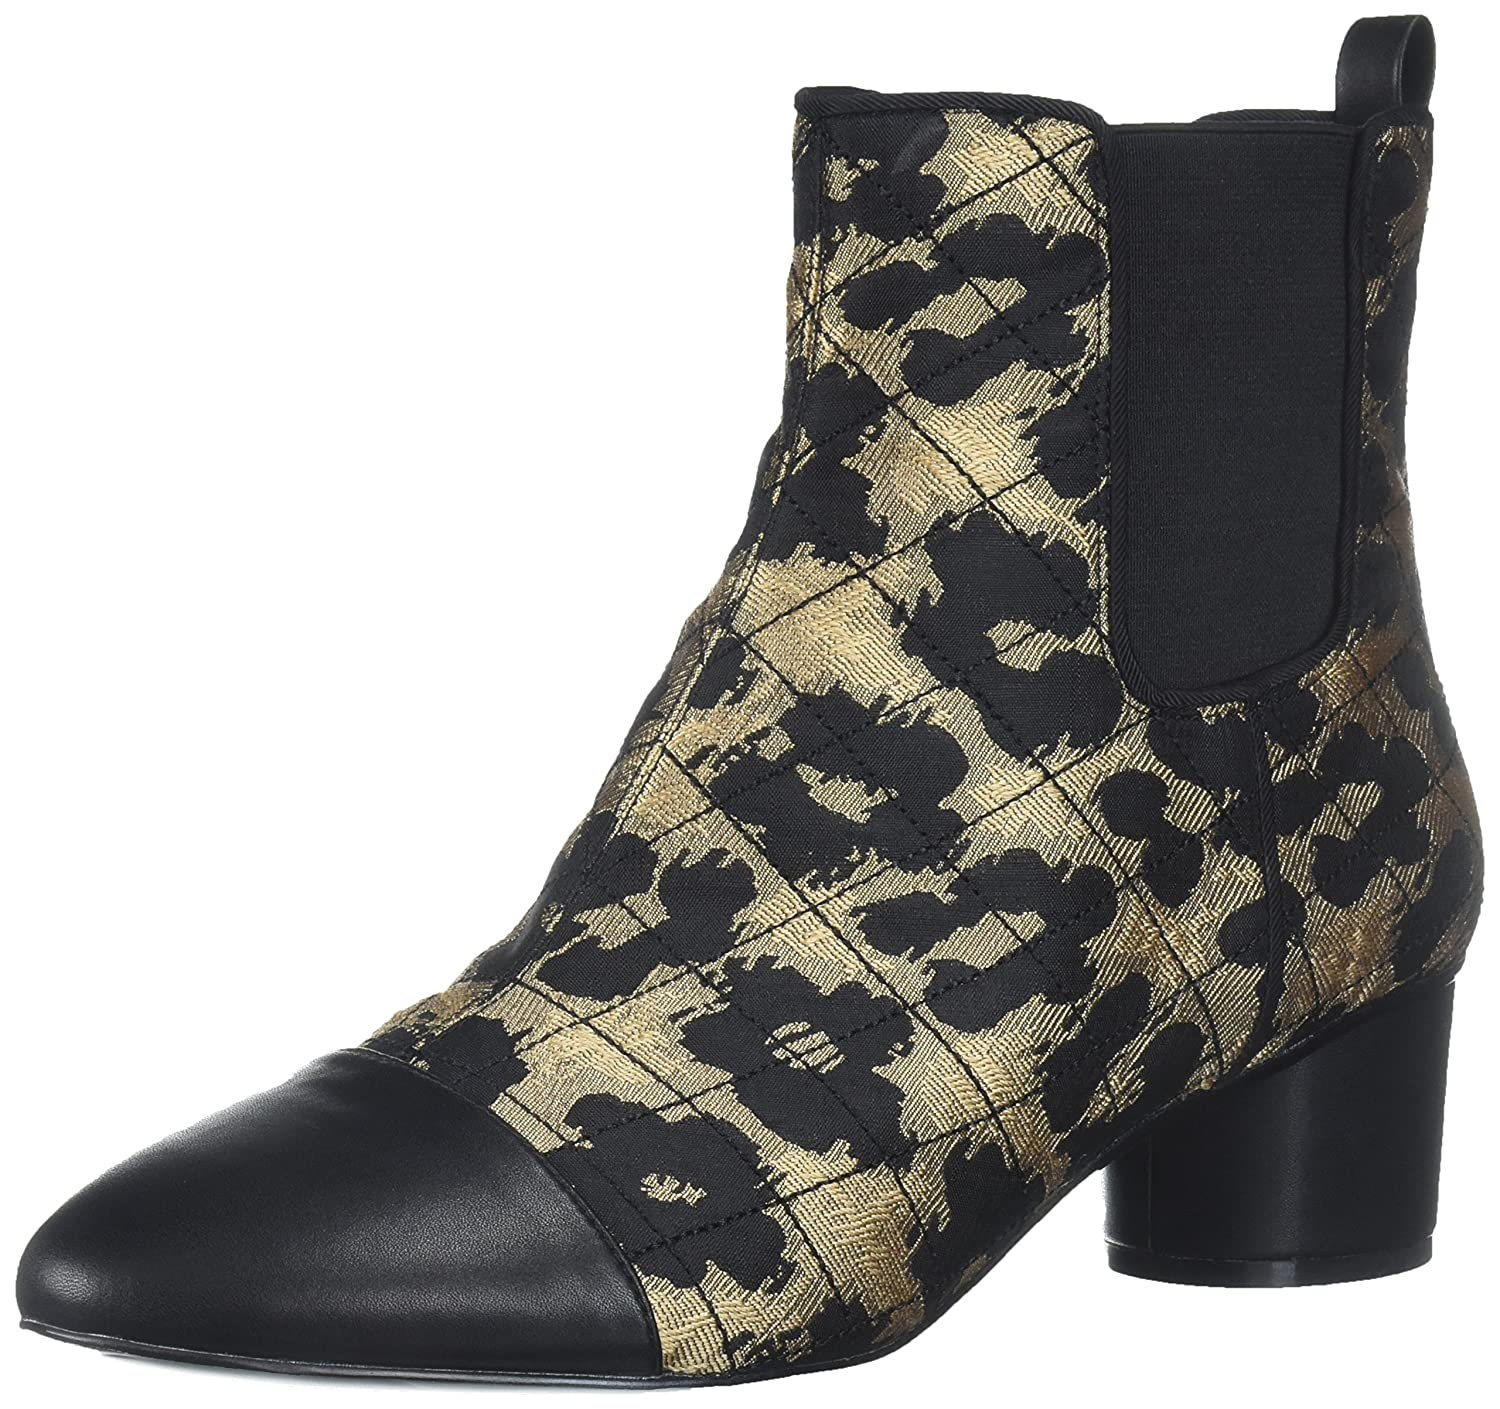 Nine West Women's Interrupt Ankle Boot B06X91QPC2 11 B(M) US|Natural Multi Fabric